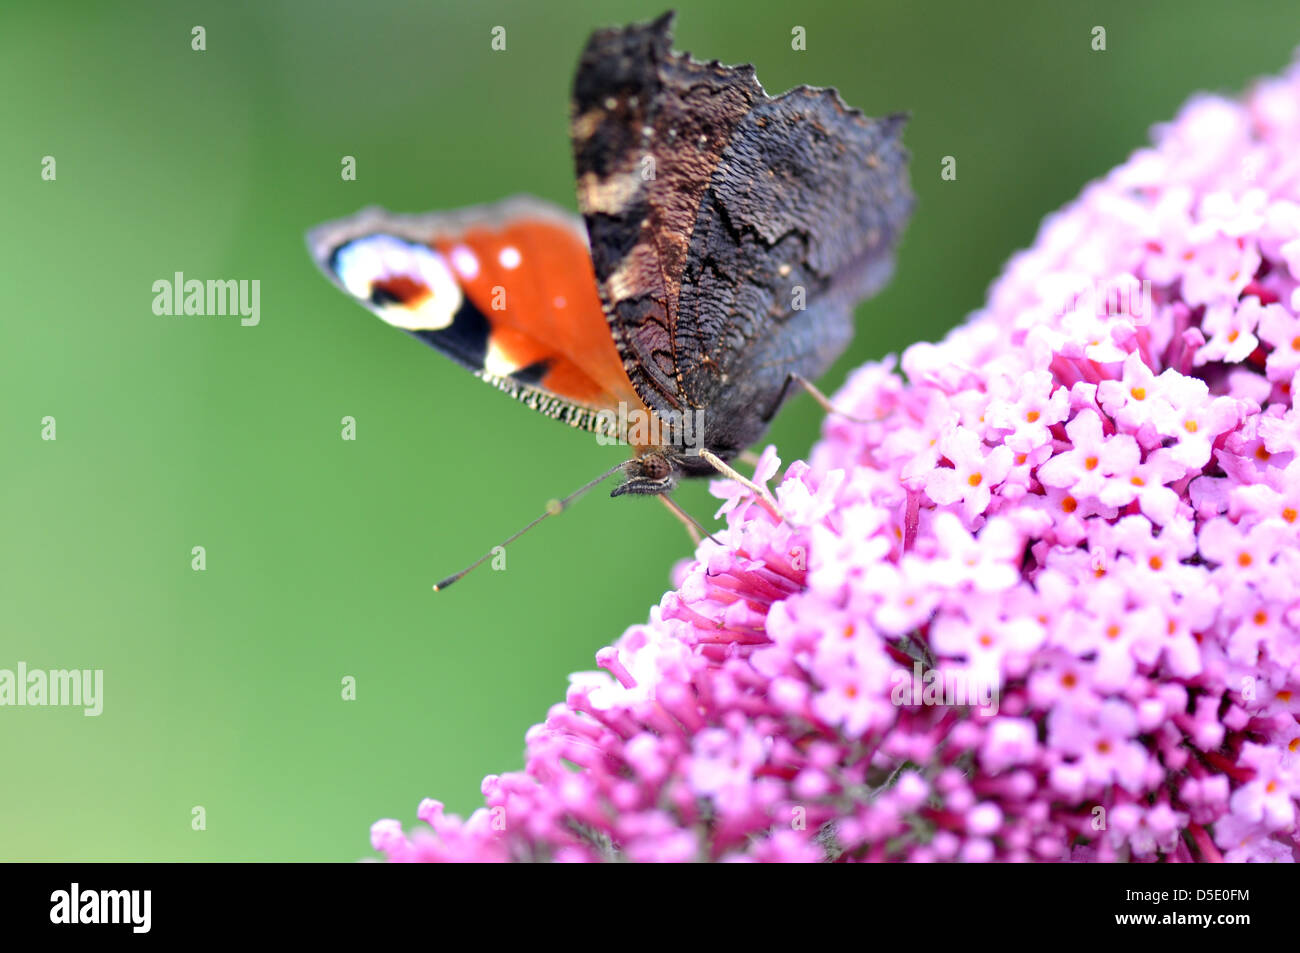 A peacock butterfly on Lilac flower. - Stock Image